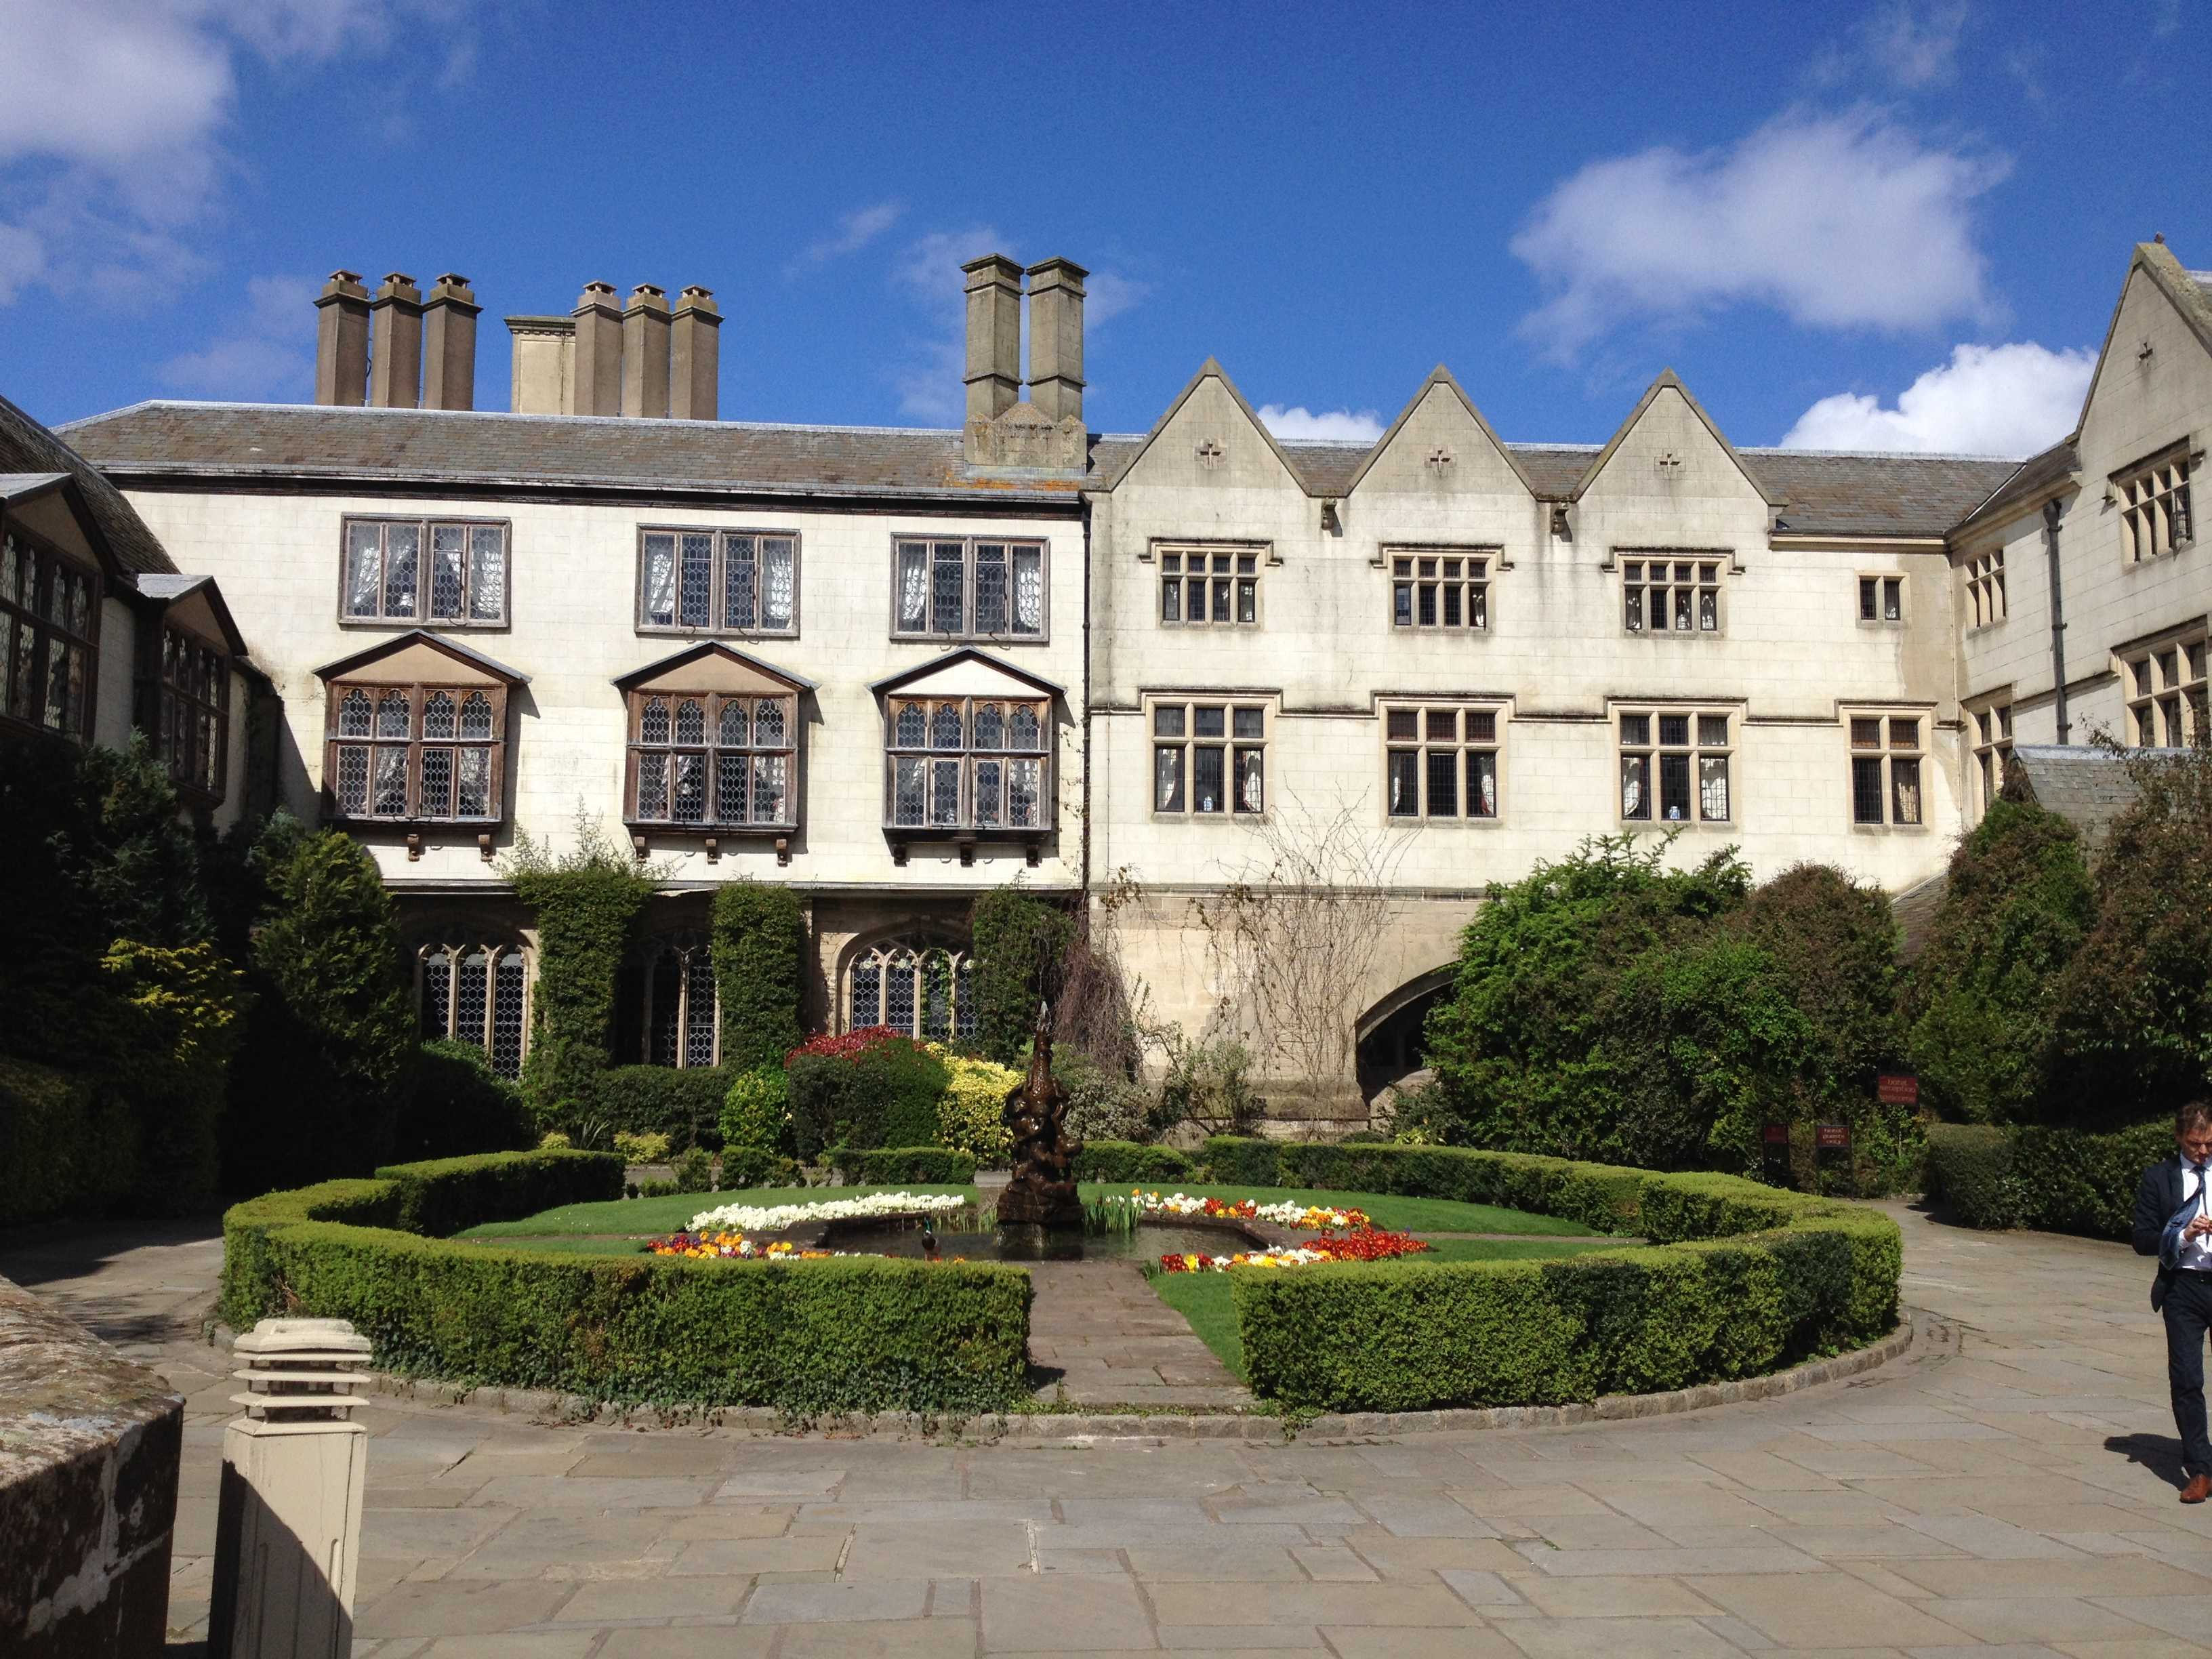 A colour photo of the outside of the Coombe Abbey Hotel in Coventry.